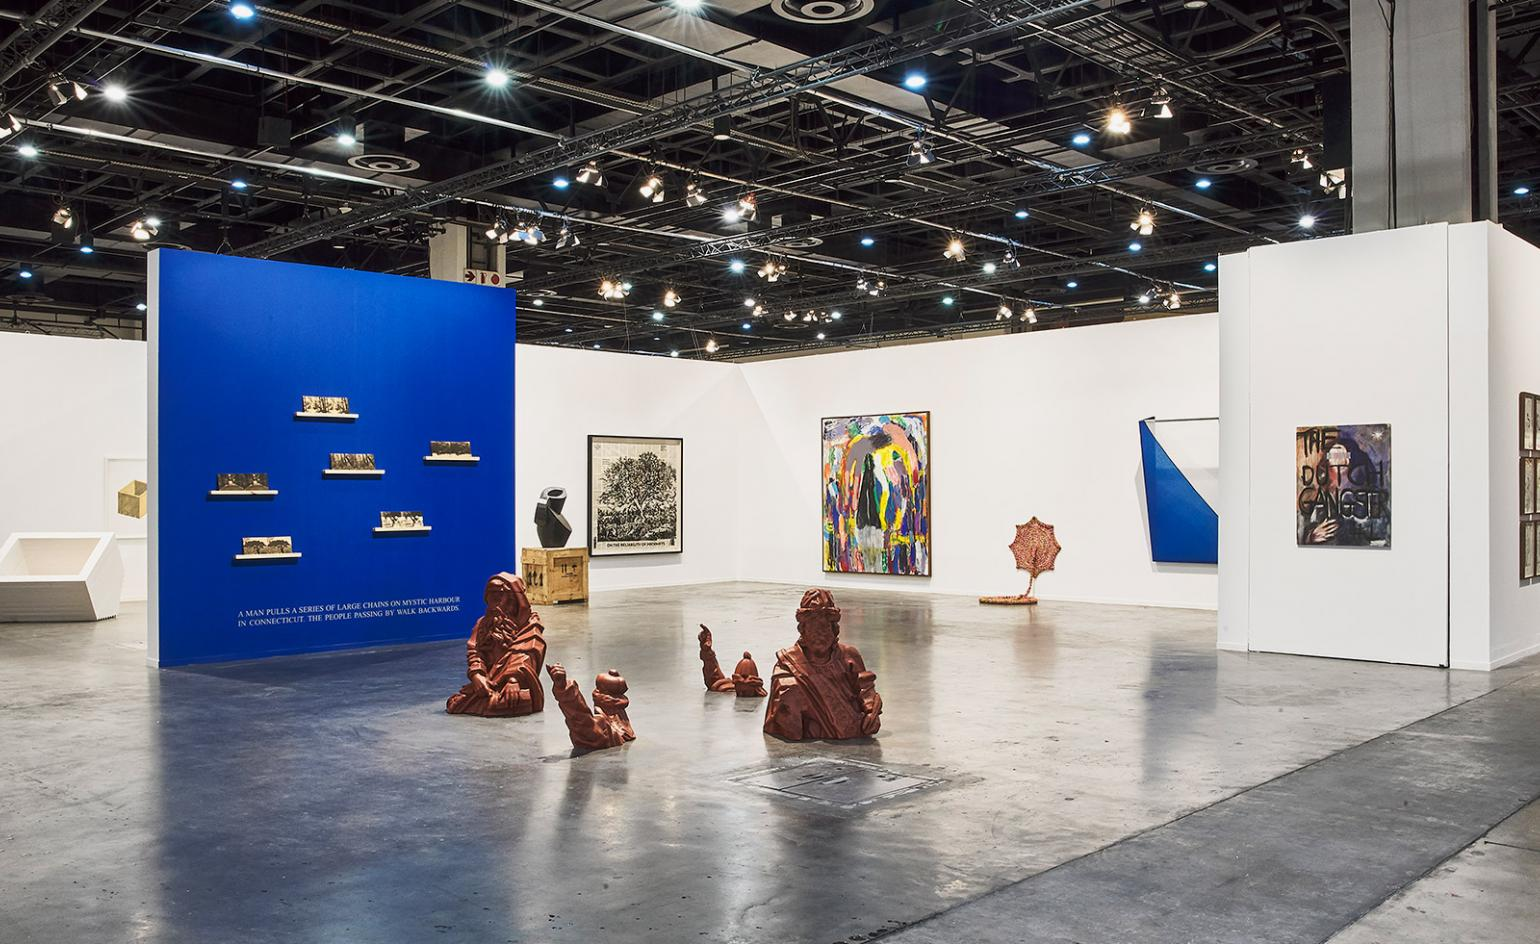 A refreshed Art Joburg fetes the city's booming creative scene